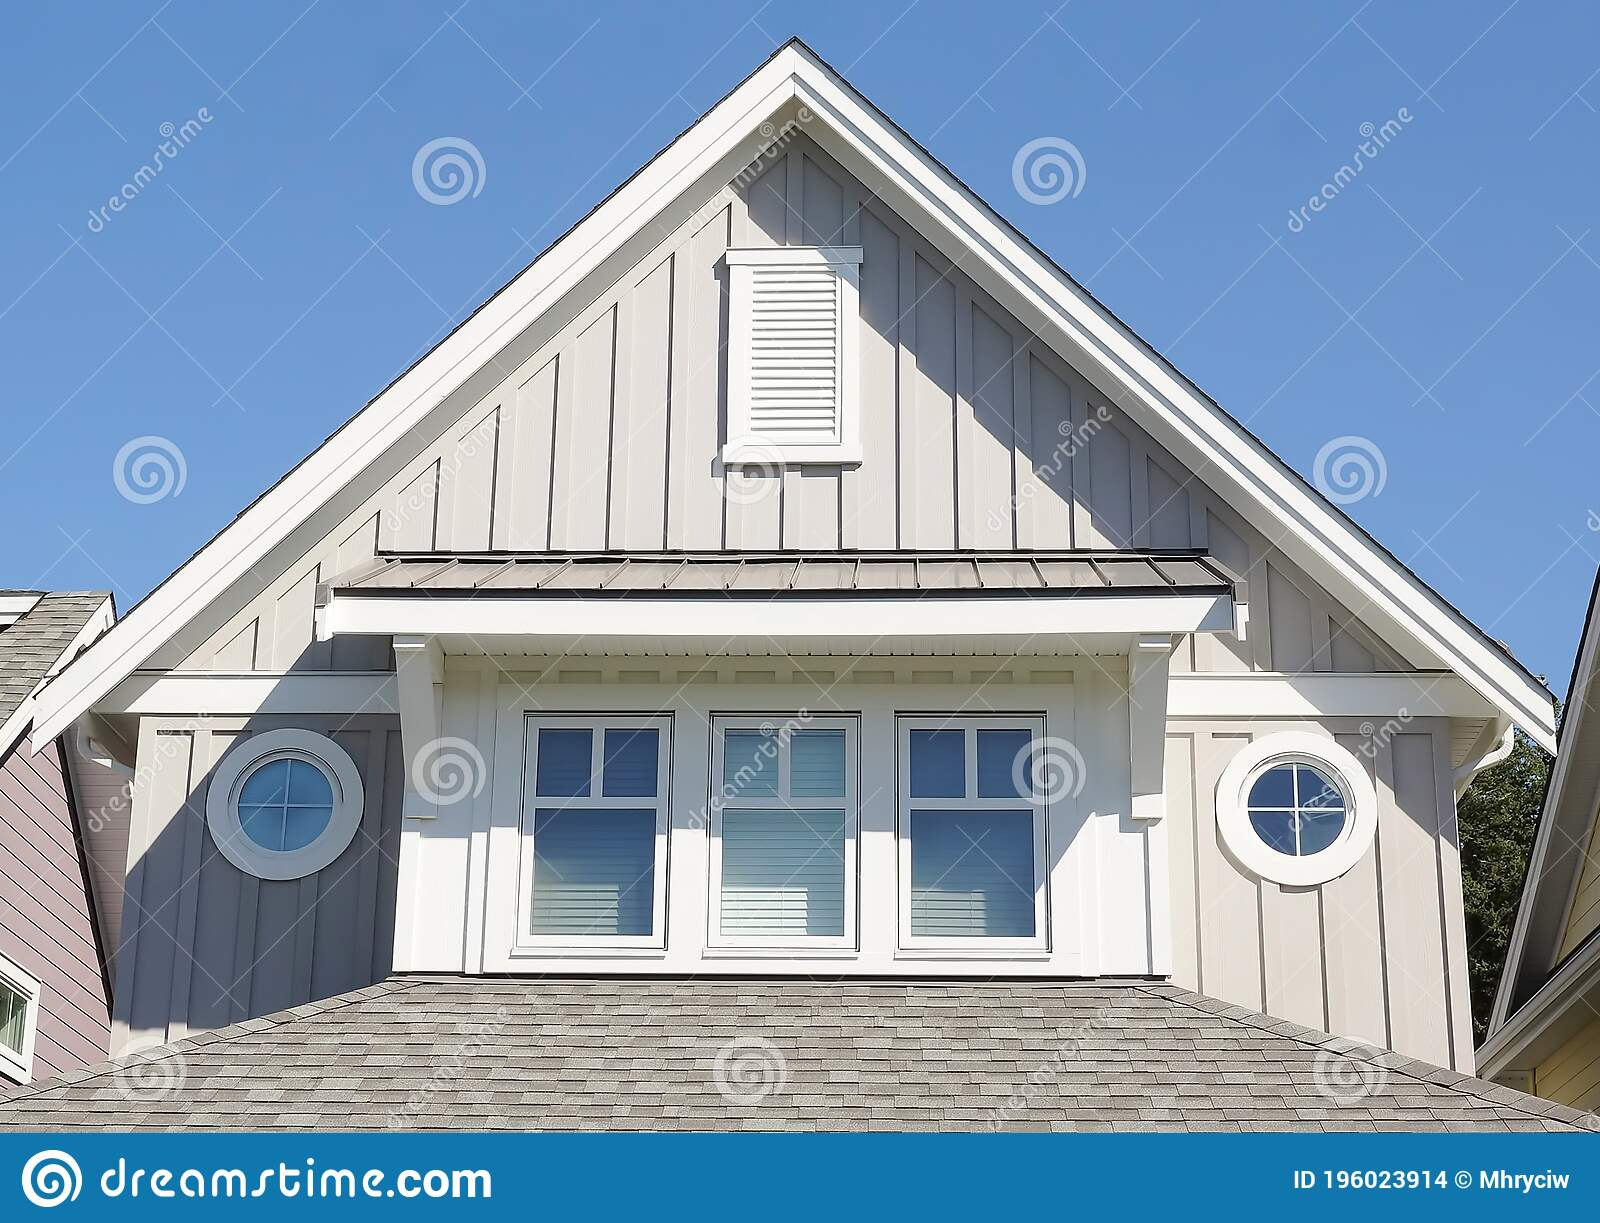 modern residential home exterior showing light gray painted board batten siding roof peaks round windows designer house front 196023914